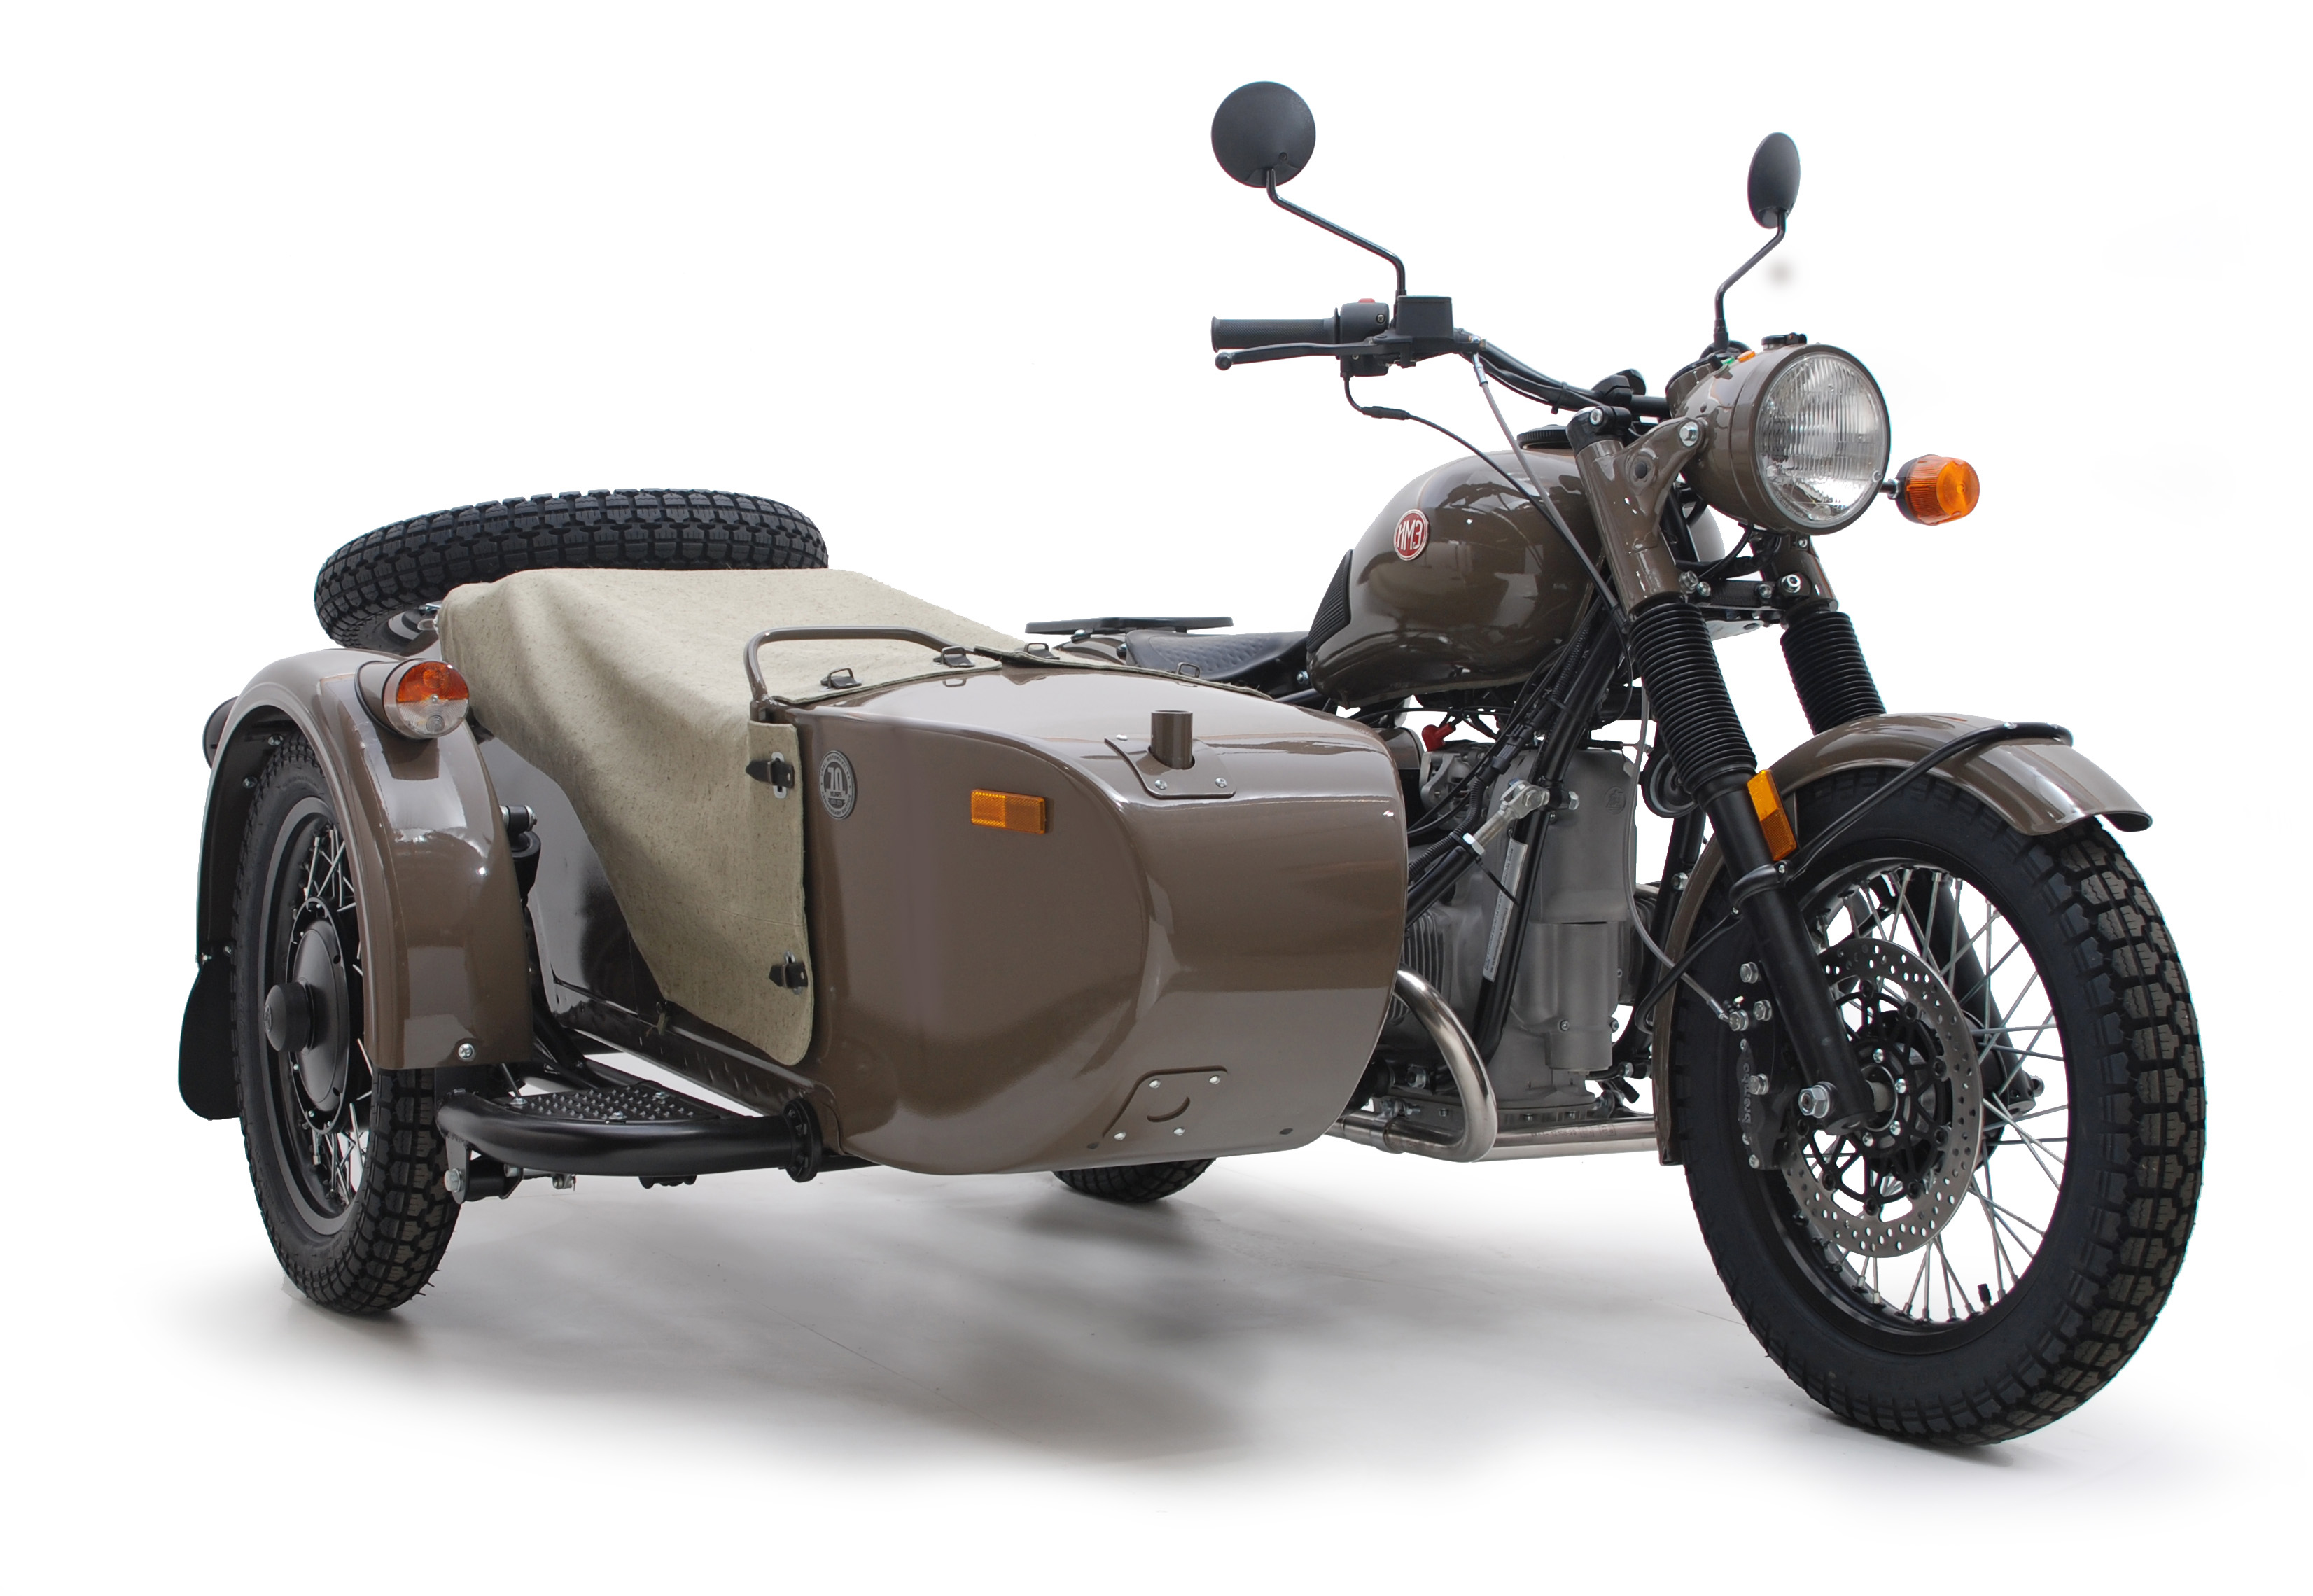 Ural M 66 with sidecar 1974 images #127367